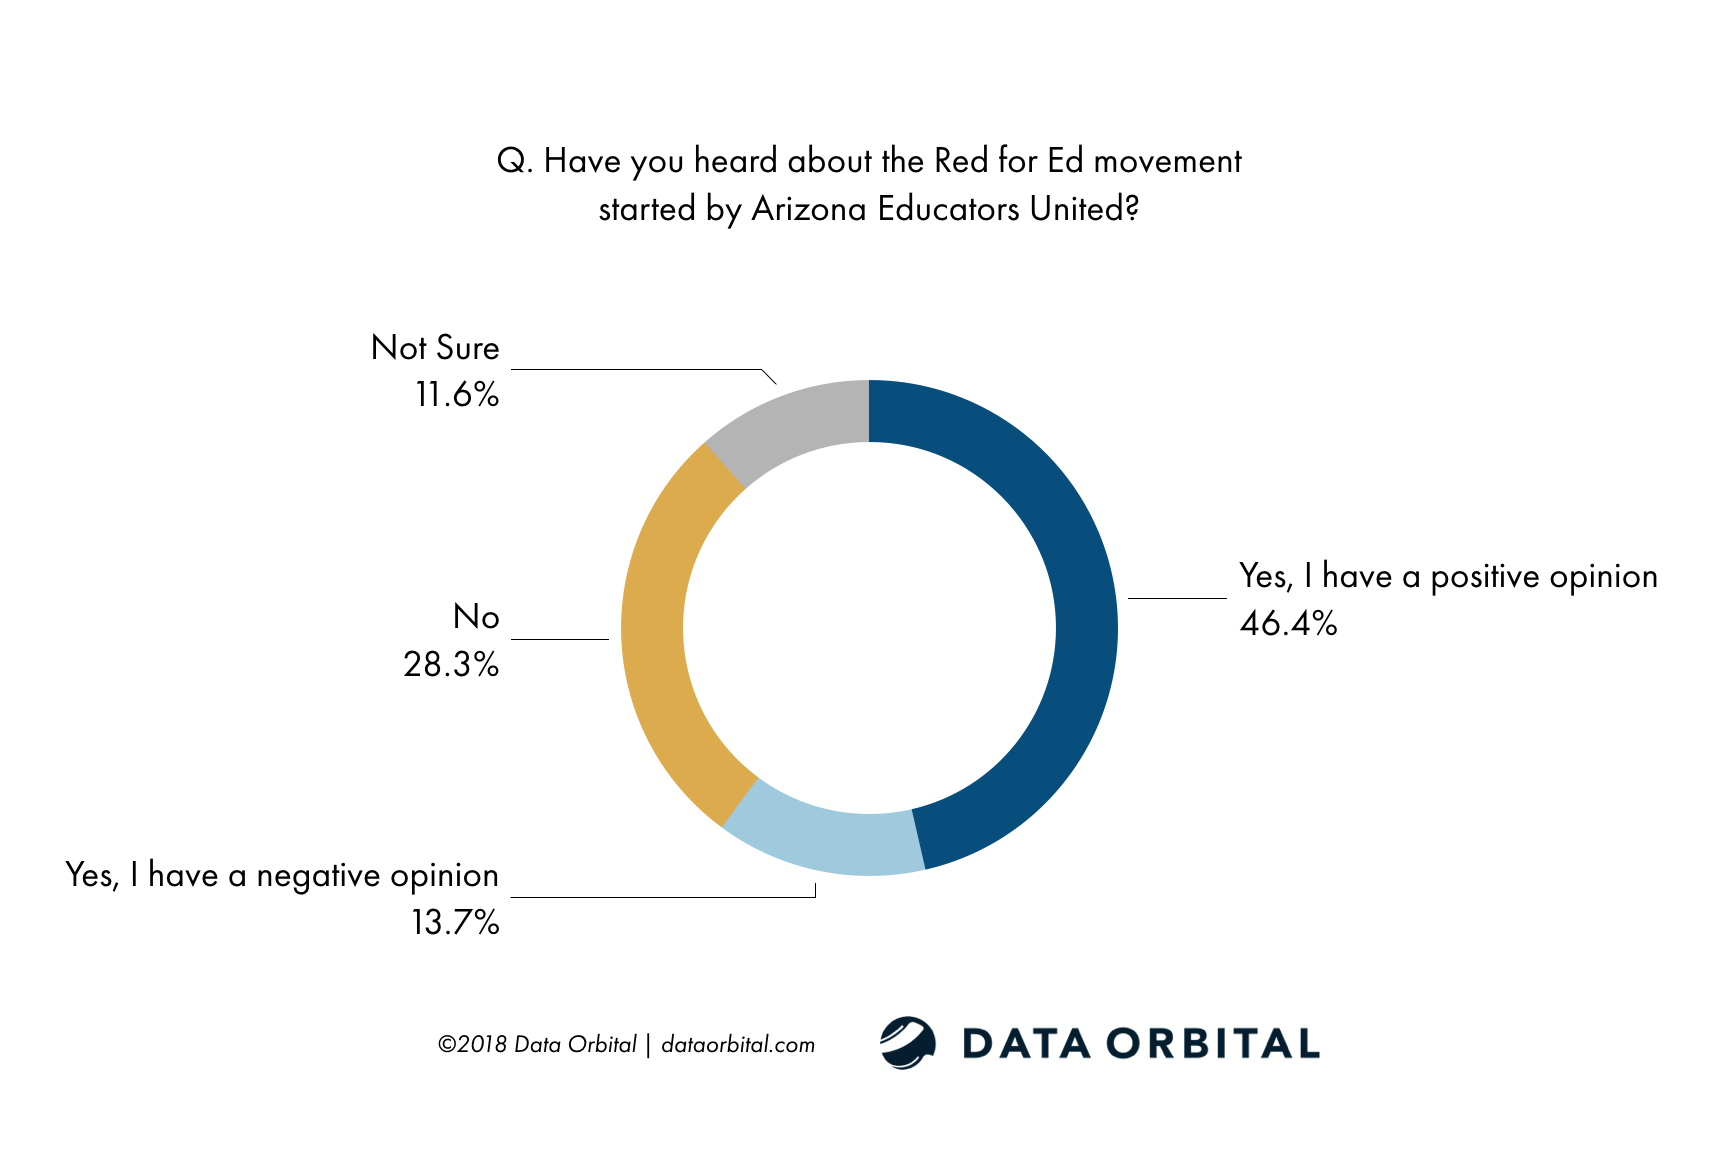 Data Orbital AZ Statewide Poll Have you heard about the Red for Ed movement started by Arizona Educators United?